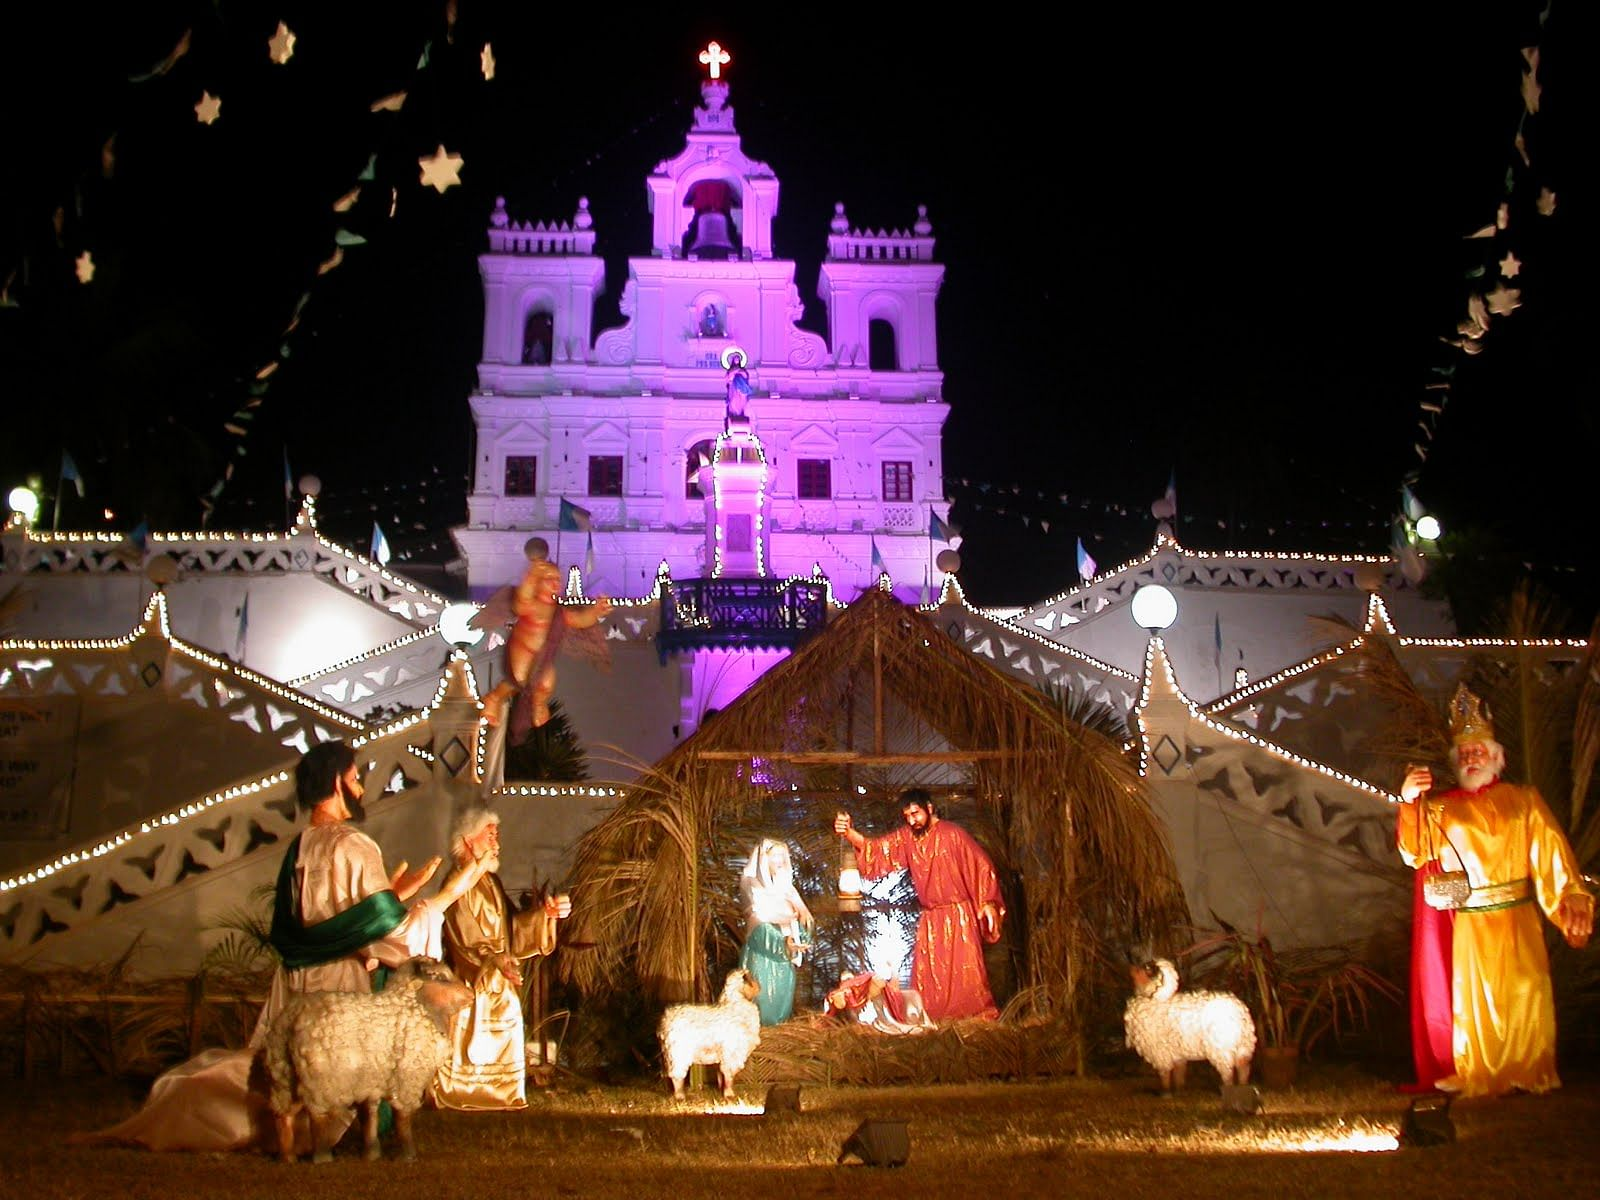 Be it any state of India, Christmas celebrate homecoming, happiness and the spirit of togetherness.